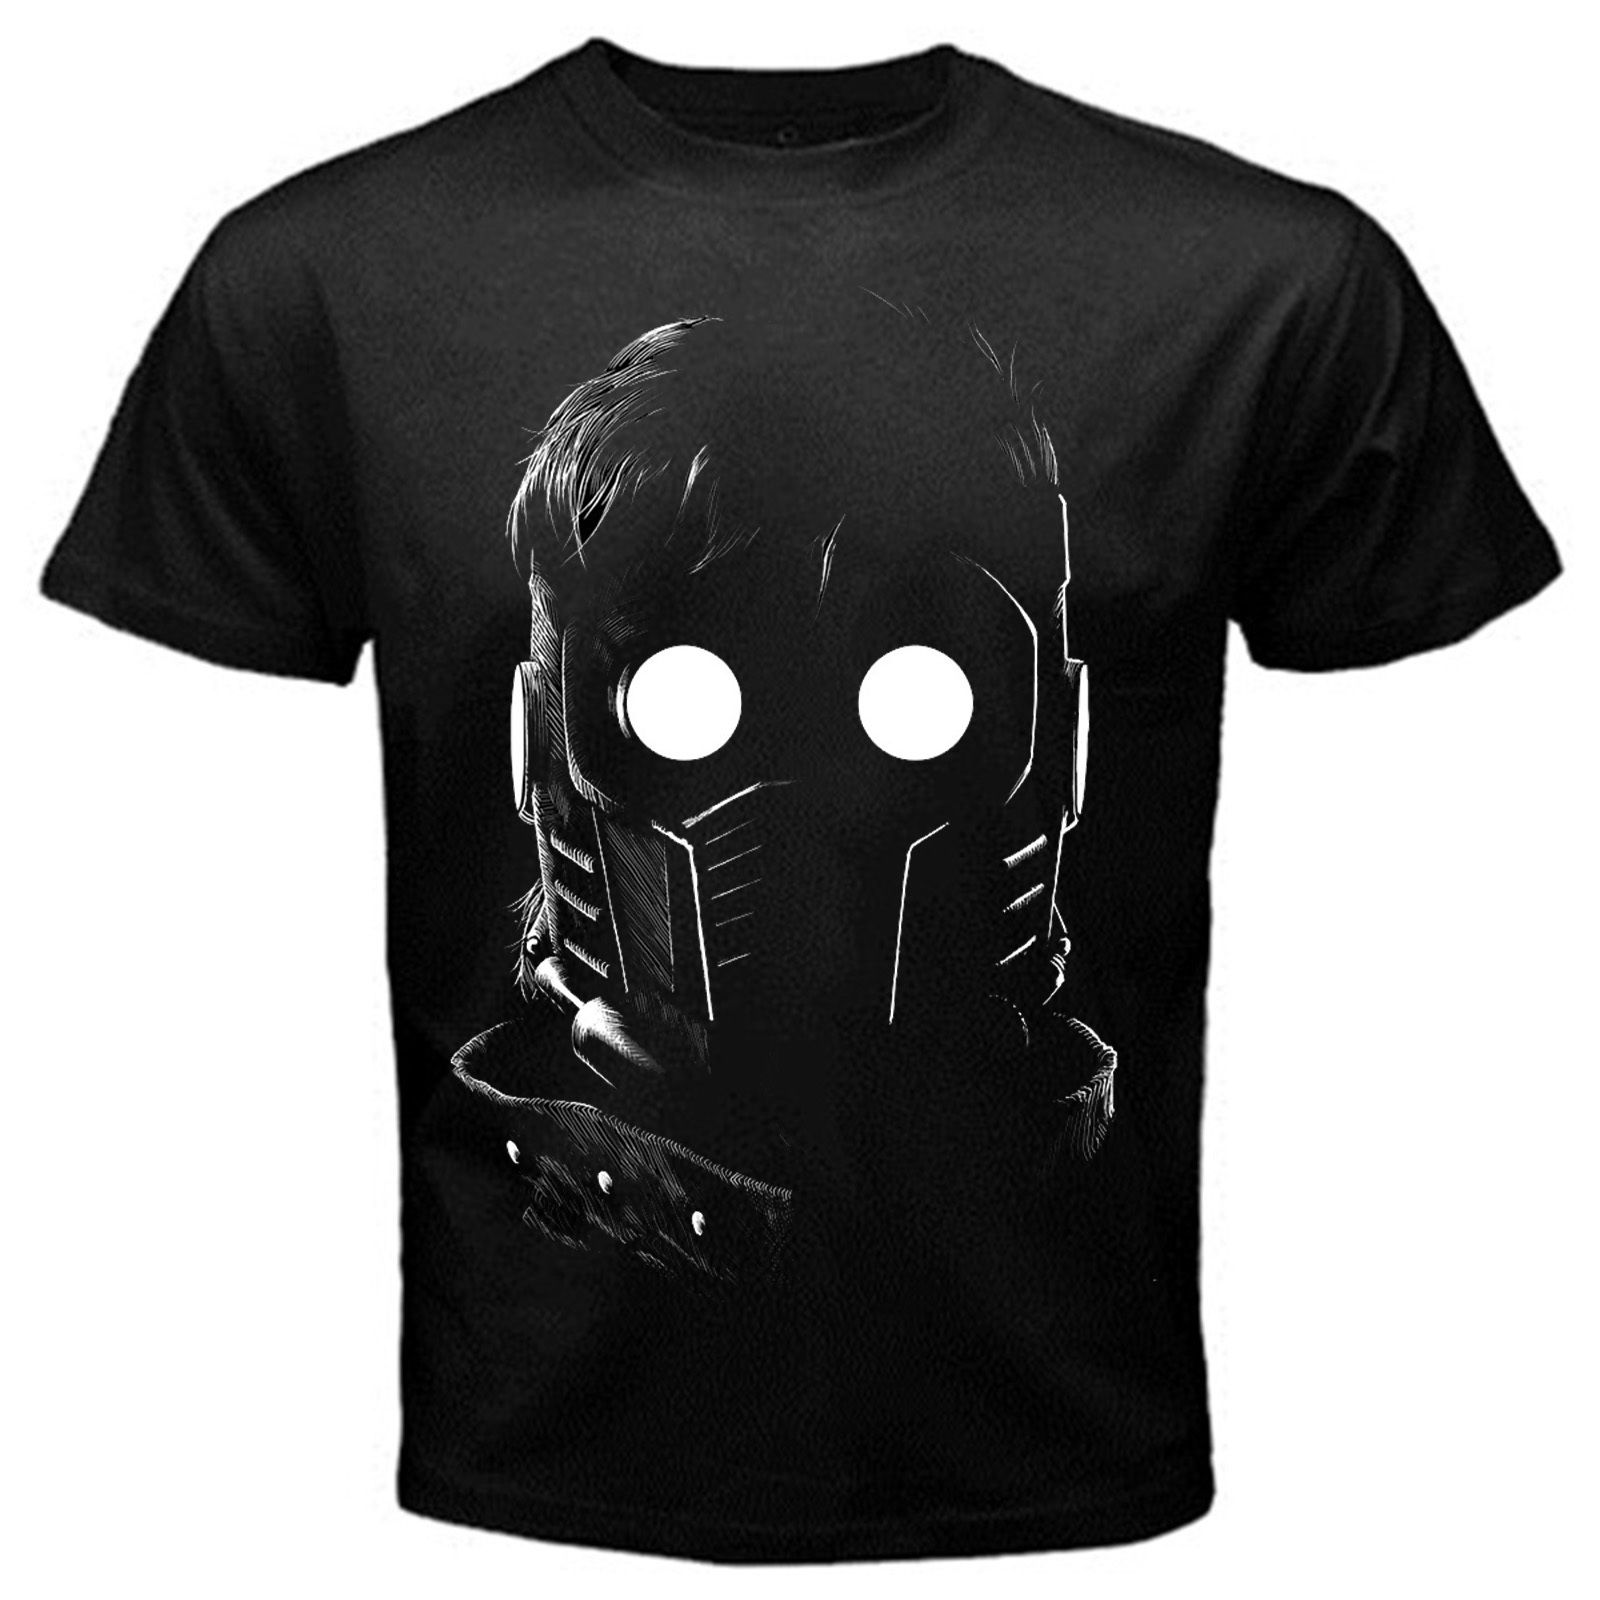 Starlord Guardian Of The Galaxy Movie Cartoon T Shirt Black Basic Tee